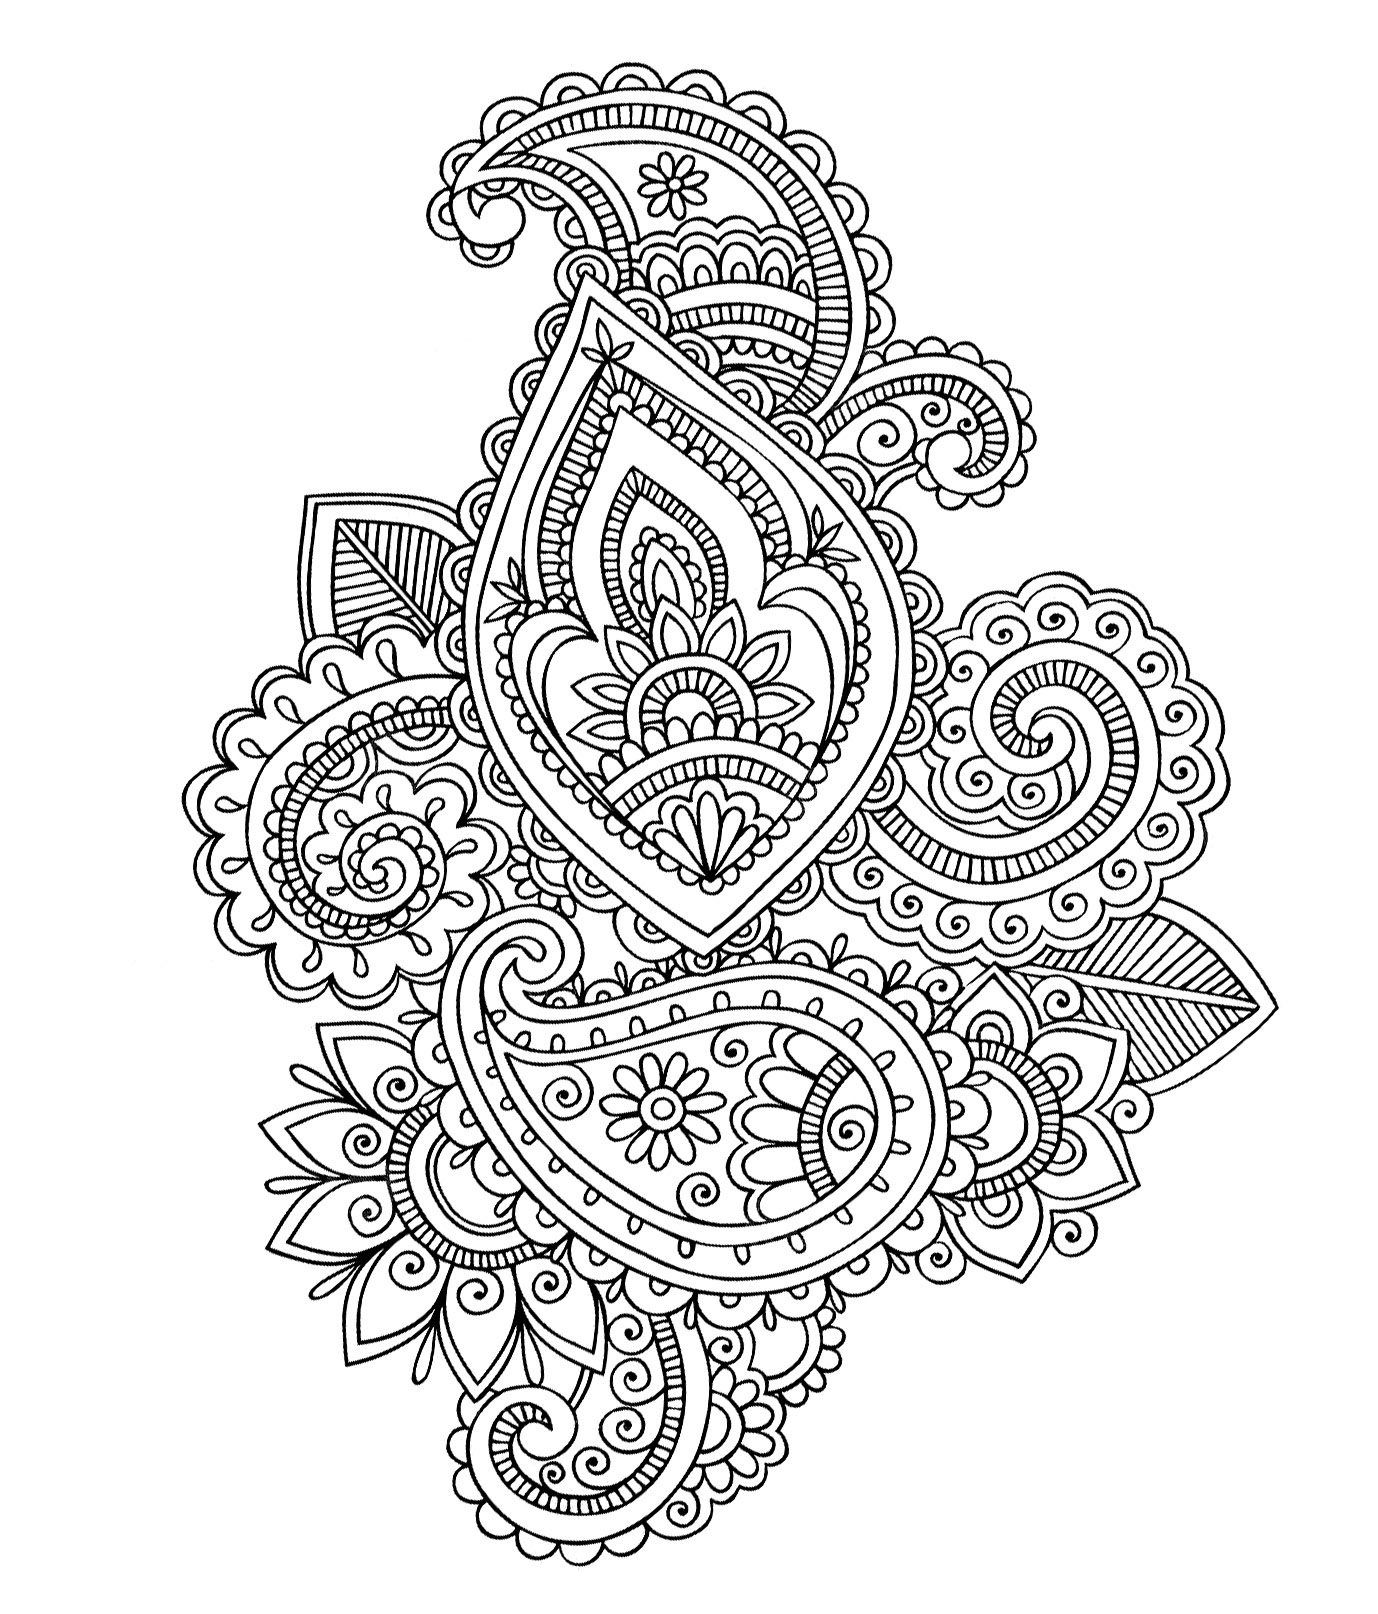 Paisley cashemire Oriental Coloring pages for adults